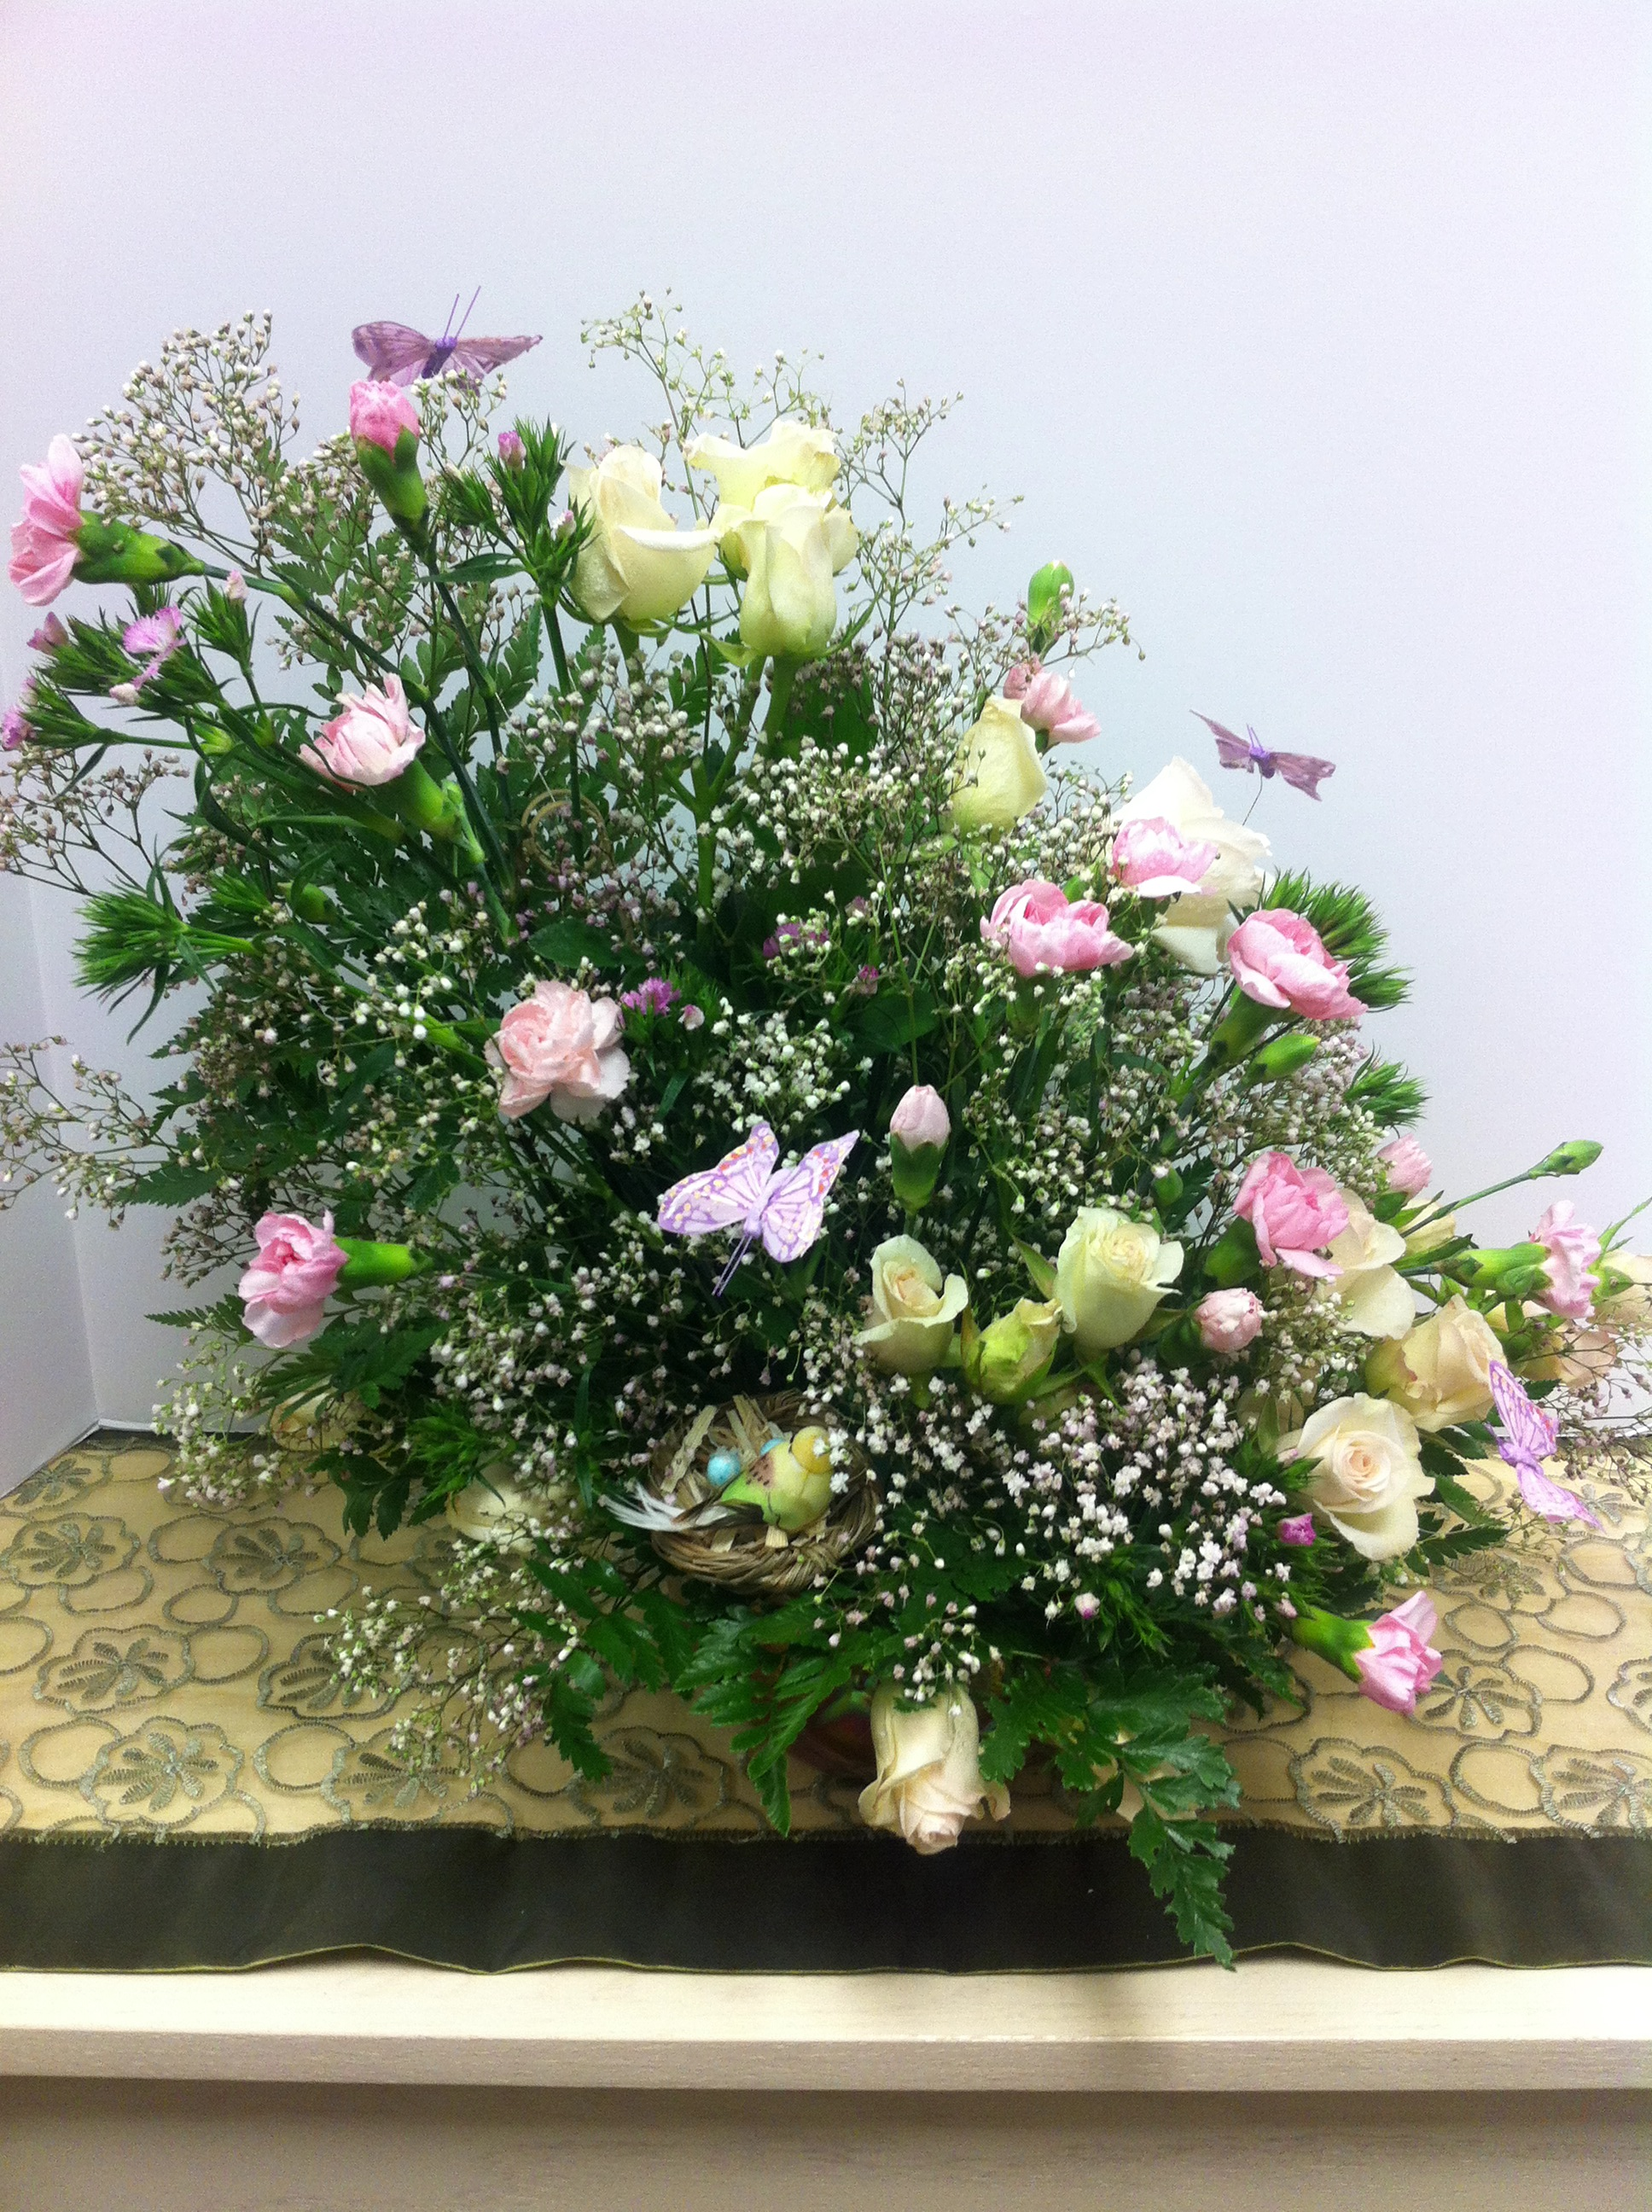 Good Night Baby Flowers Images Flowers Healthy